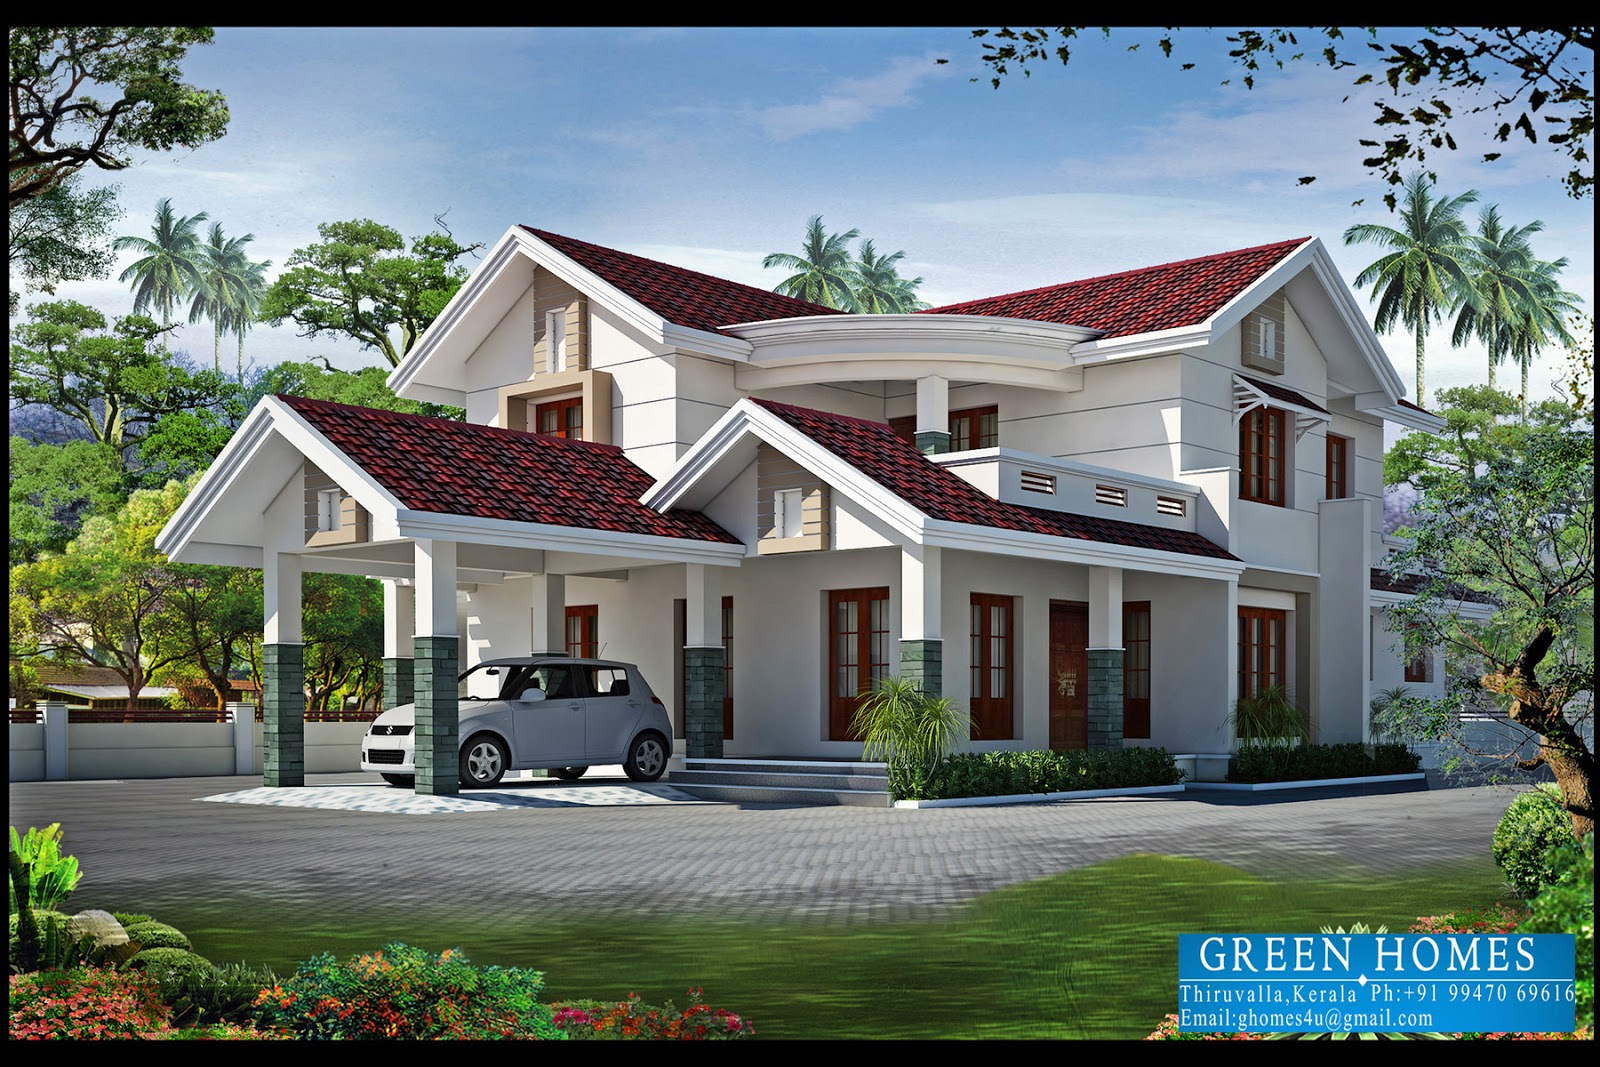 Kerla+Home+Design,Architects+in+Kerala,Architects+in+Thiruvalla,Kerala ...